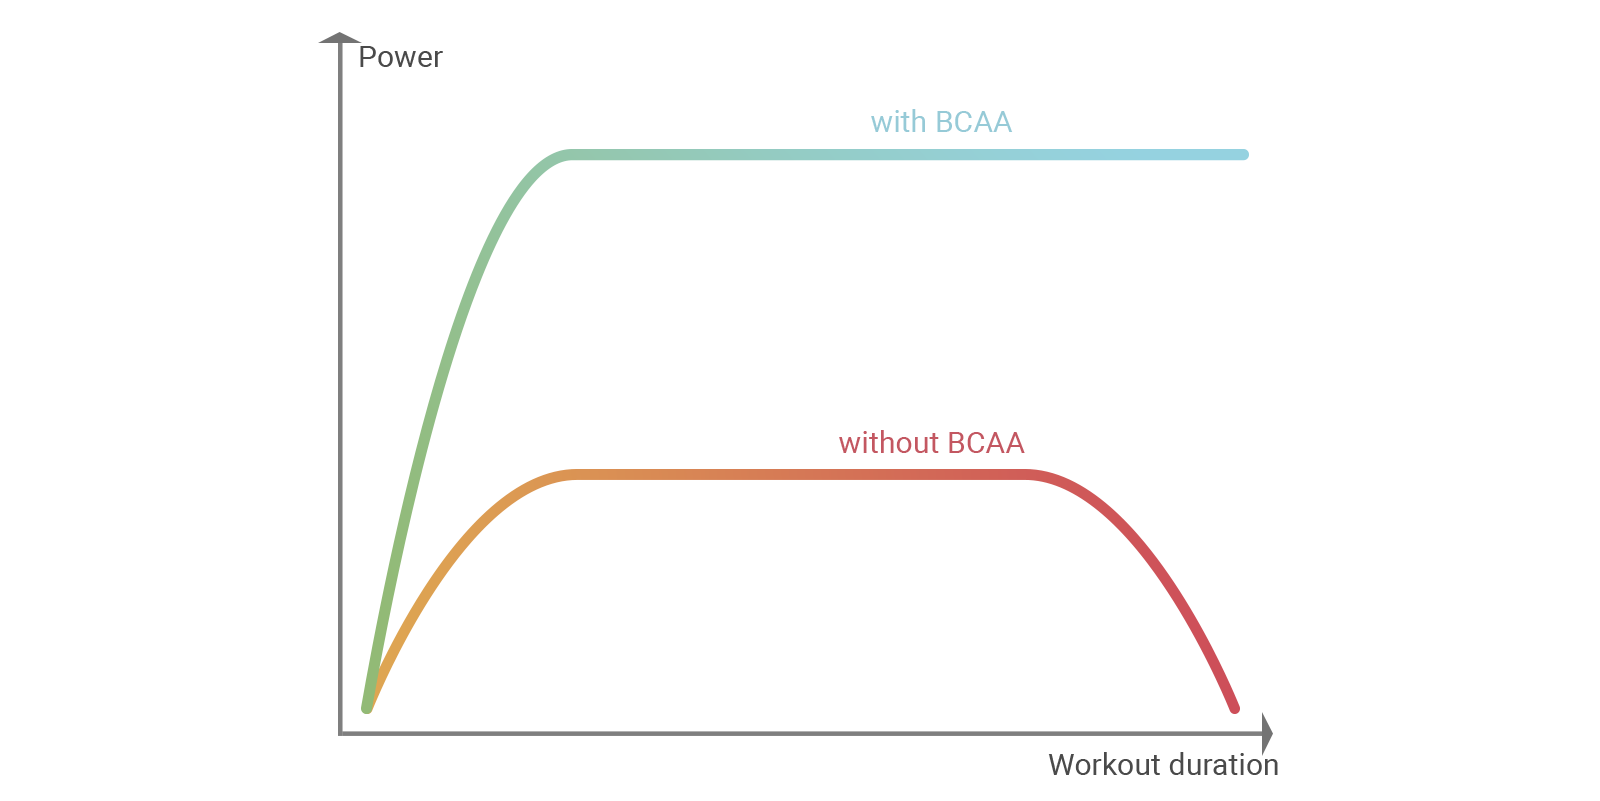 Diagram - performance with and without BCAA